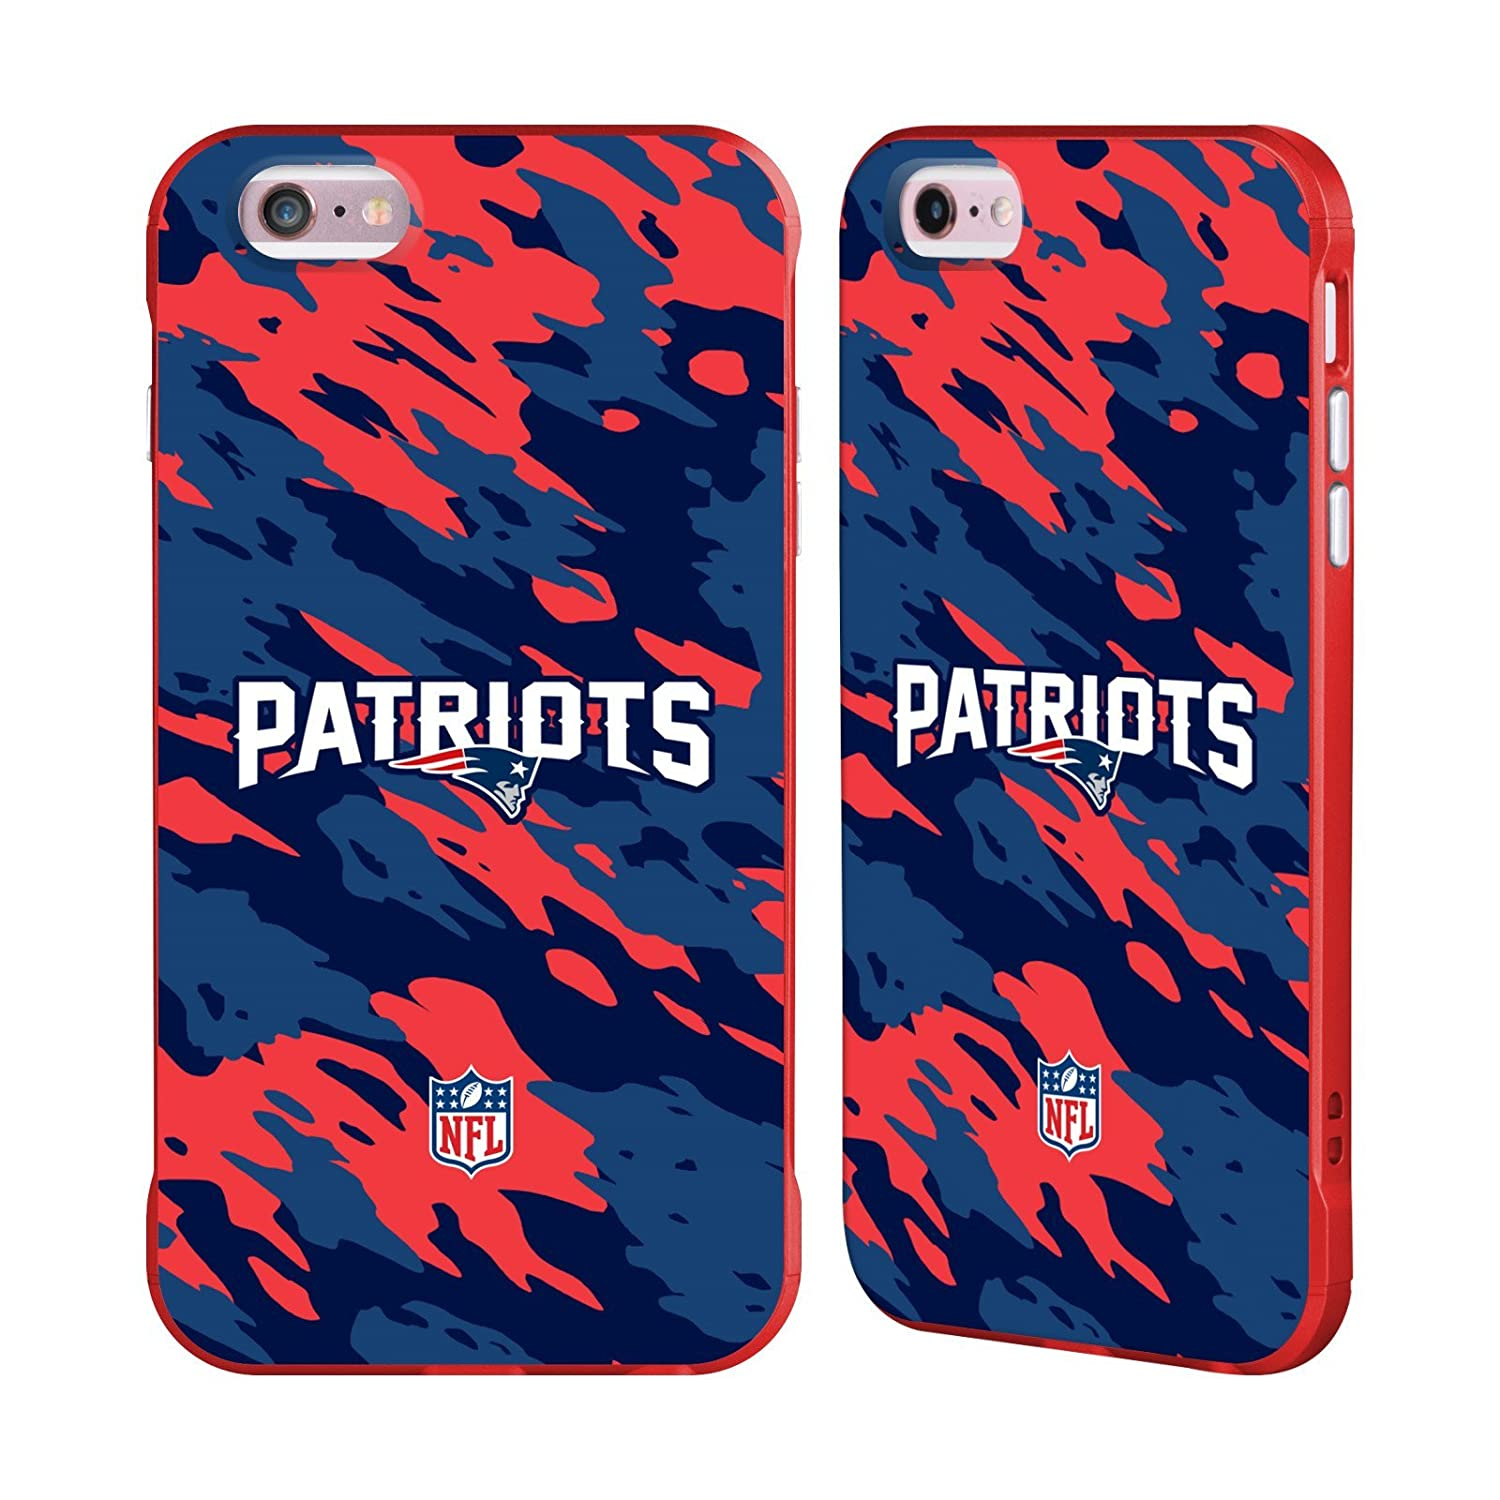 Ufficiale NFL Strisce New England Patriots Logo Rosso Fender Case per Apple iPhone 7/iPhone 8 Head Case Designs H6018-IPH7-NFLLOENG-STR